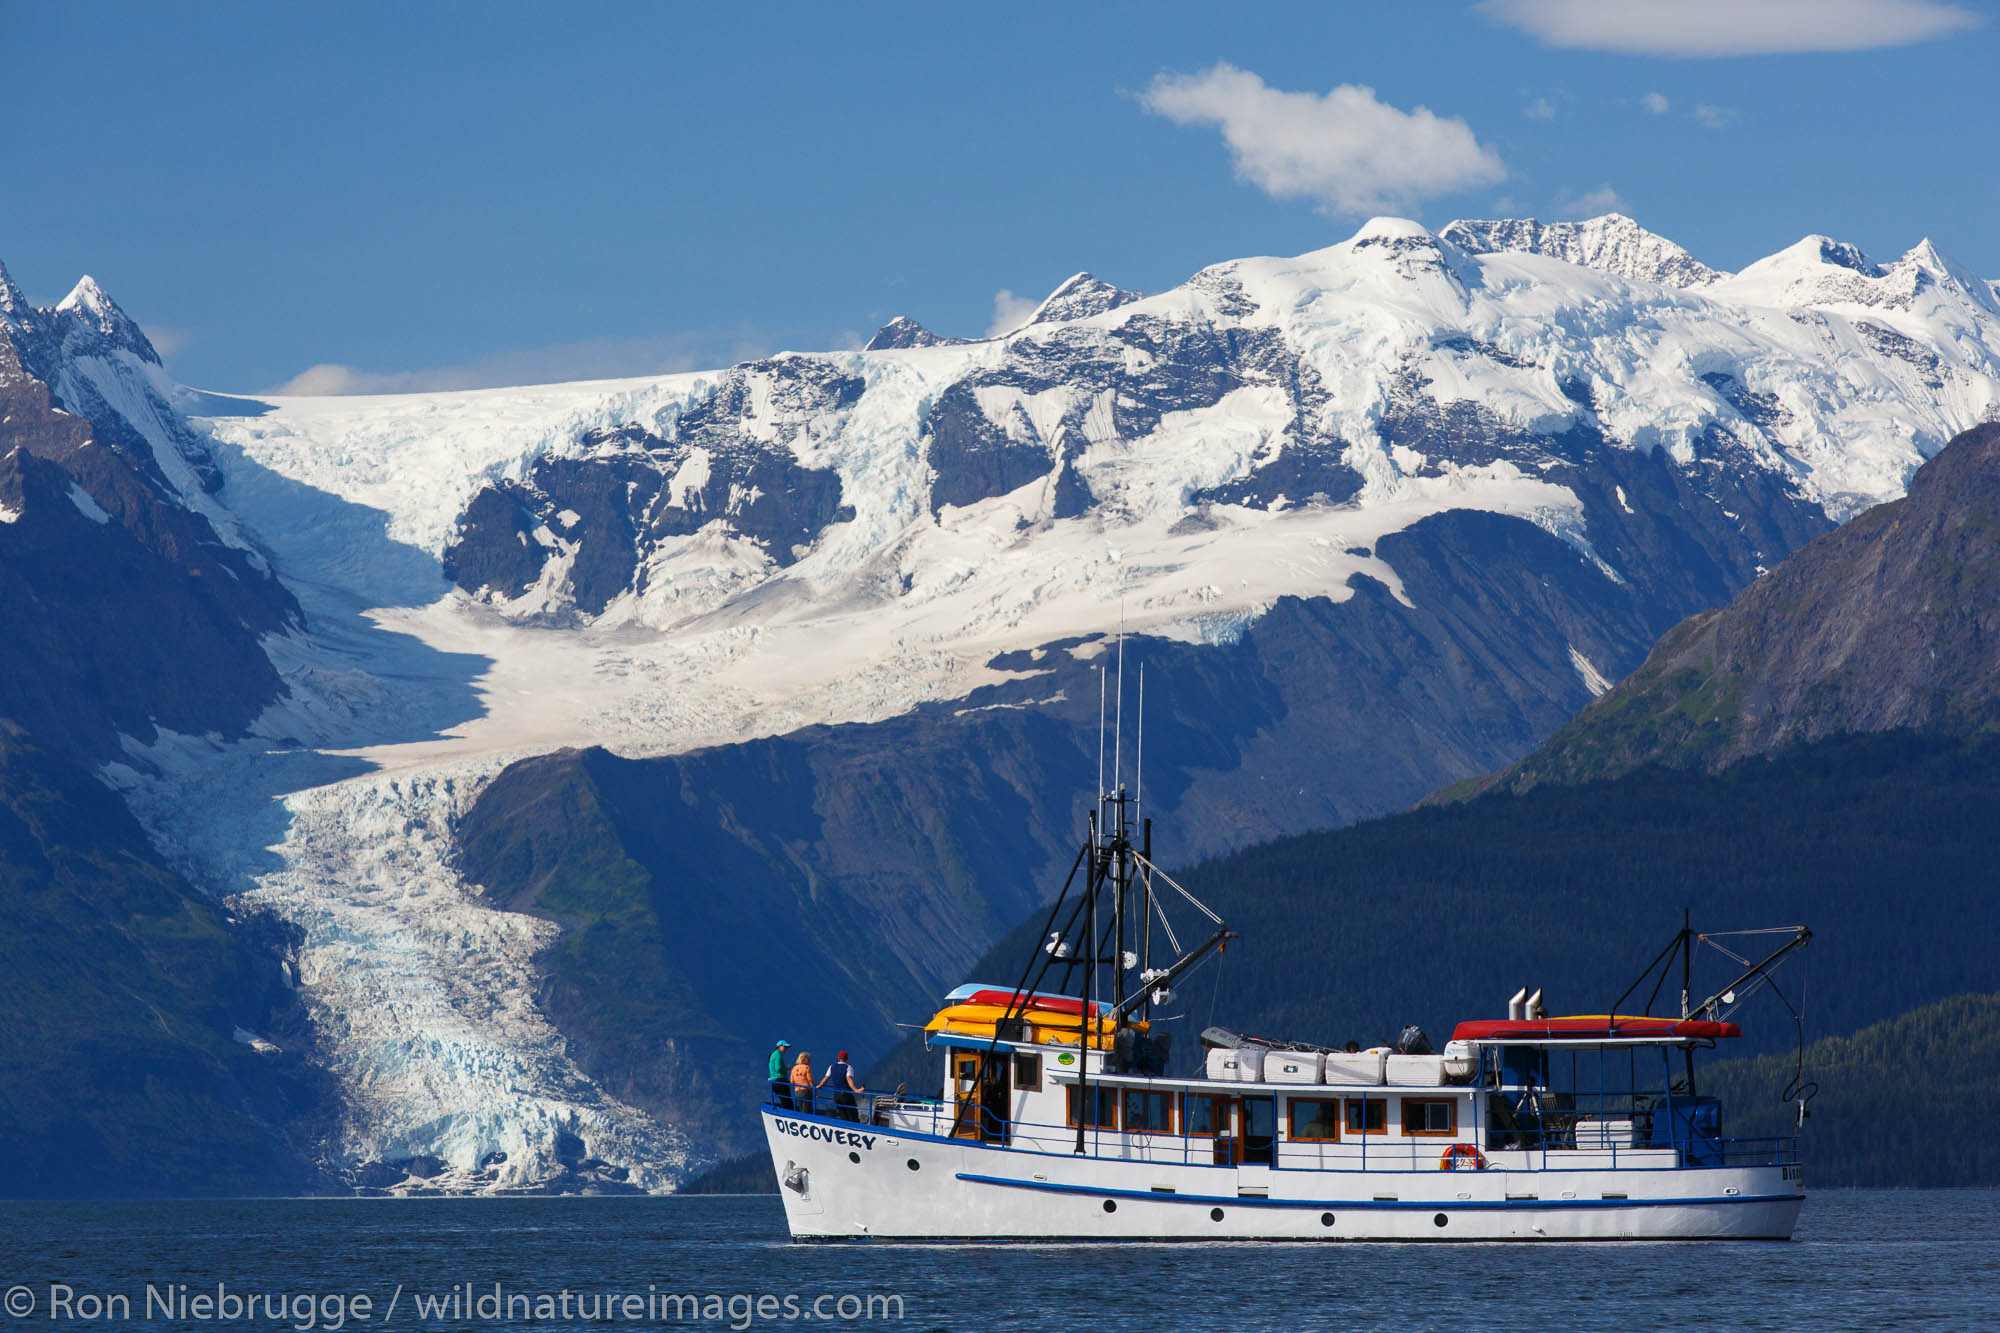 The M/V Discovery in Port Wells, Prince William Sound, Chugach National Forest, Alaska.